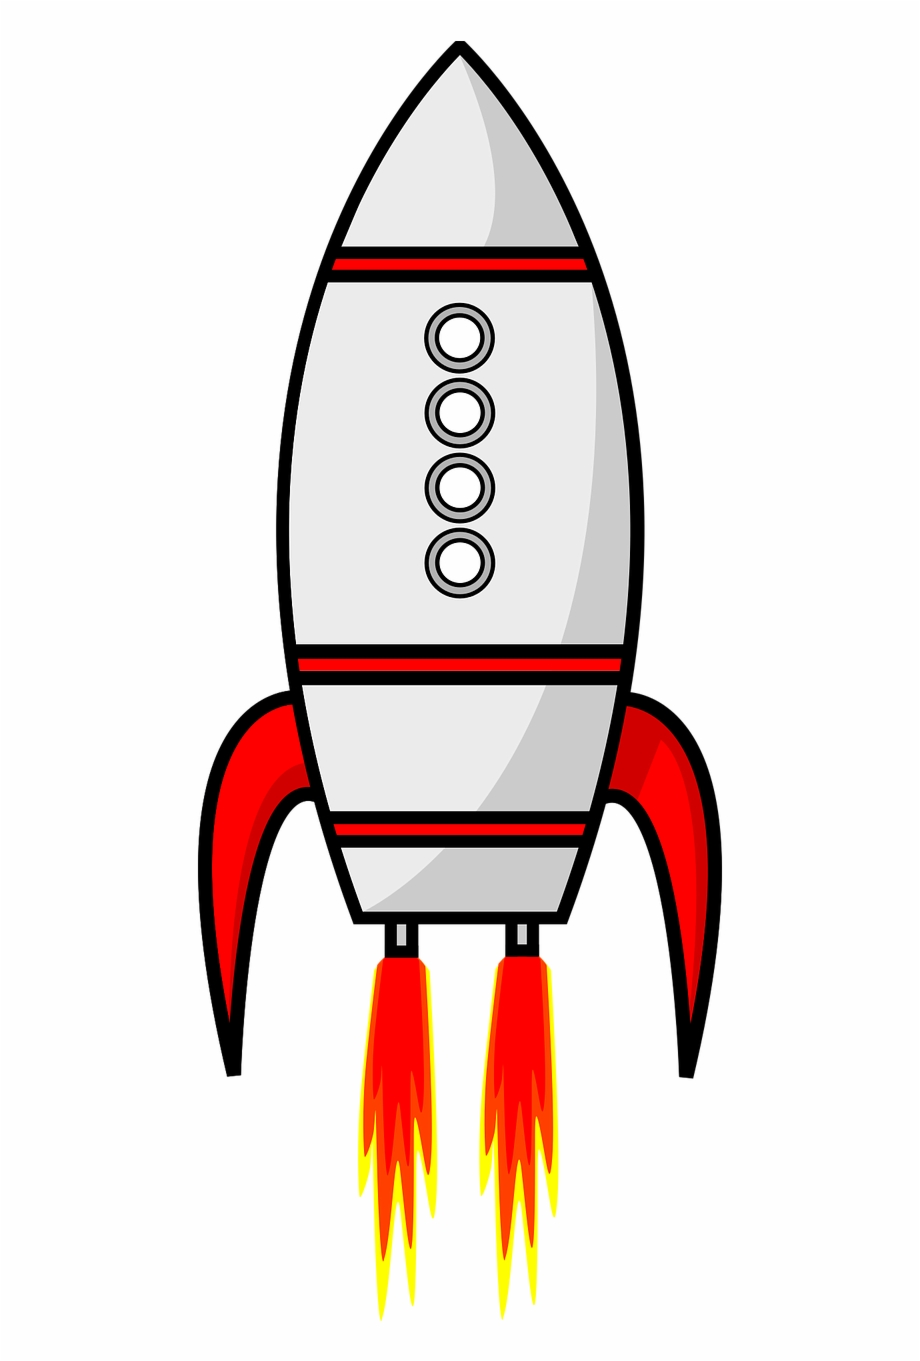 Ship Space Spacecraft Png Image.